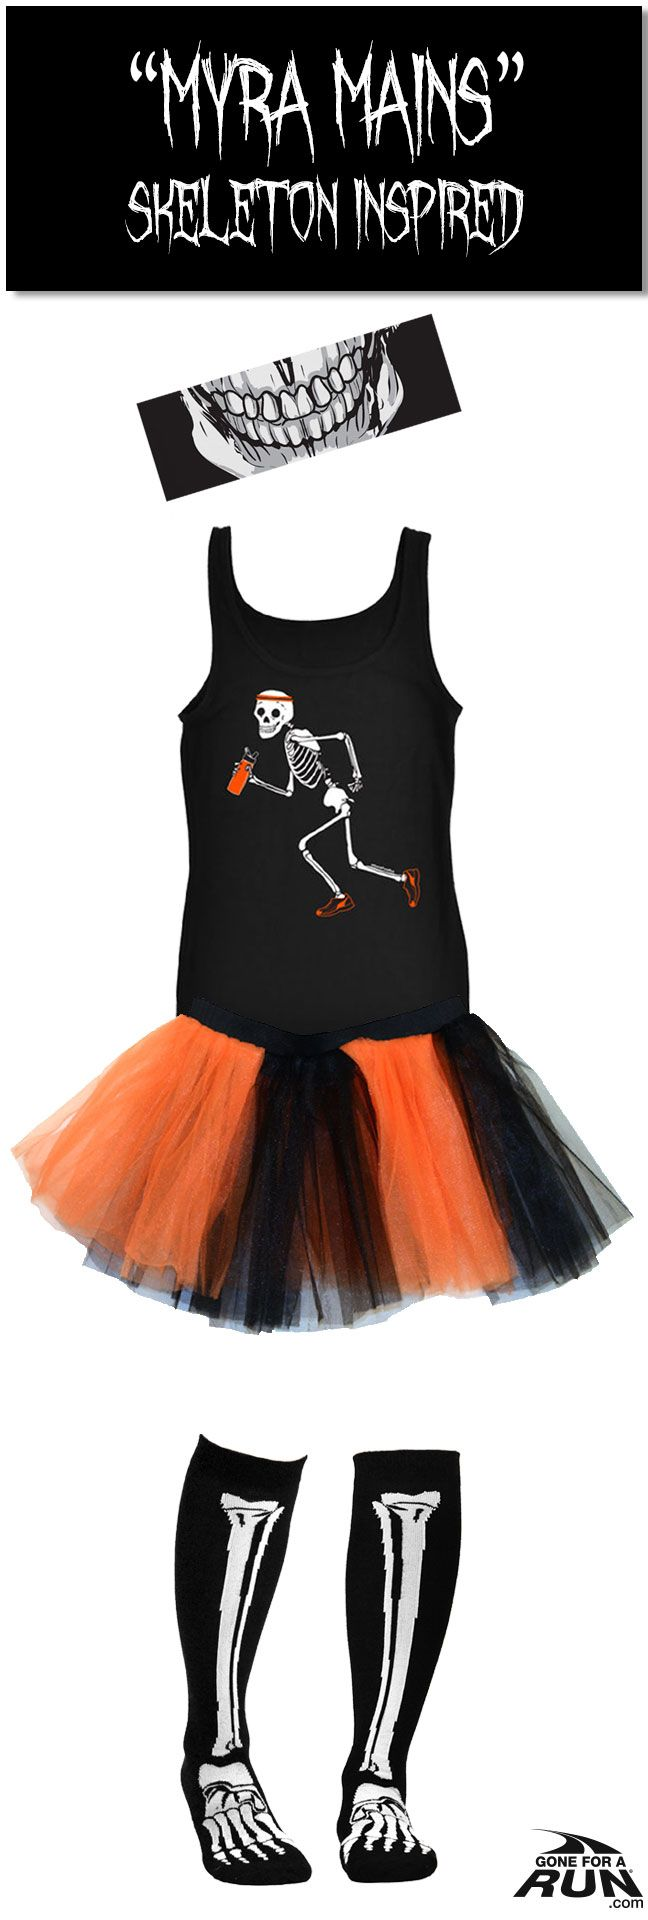 Make up your own #costume, or check out one of our original ideas: Show off what those old #skeleton bones can do with our Women's #skeleton inspired Halloween runner's costume! Get in a #spooky fun mood with our #Halloween inspired running apparel! From shirts to socks and more, you'll find something to suit you and your running friends haunted moods!